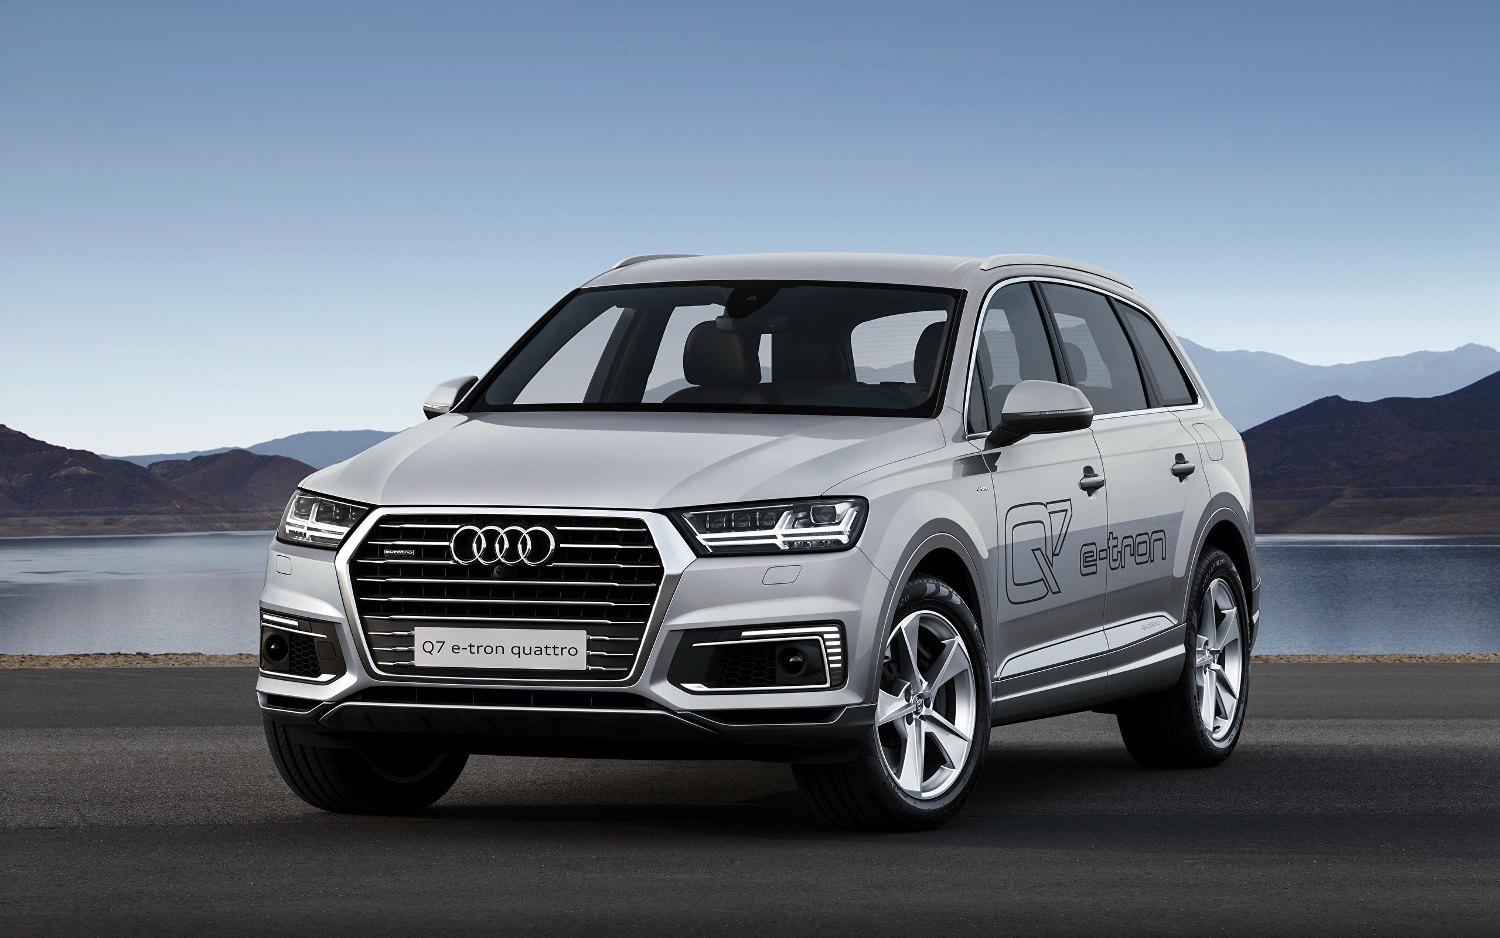 audi q7 e tron quattro hybrid 2018 suv drive. Black Bedroom Furniture Sets. Home Design Ideas